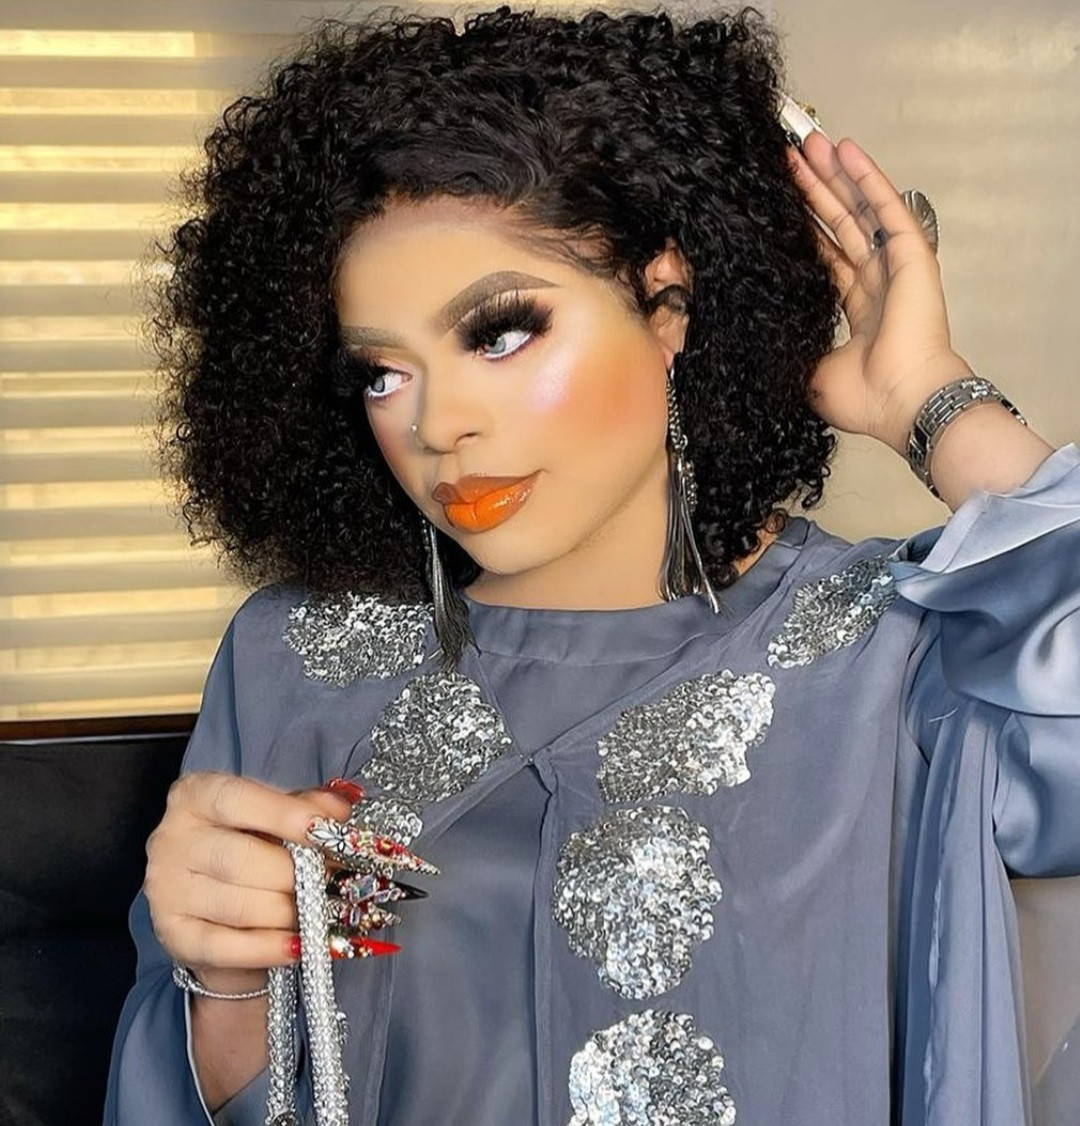 360 lipo is damn painful, I want my life back - Bobrisky writes after alleged plastic surgery